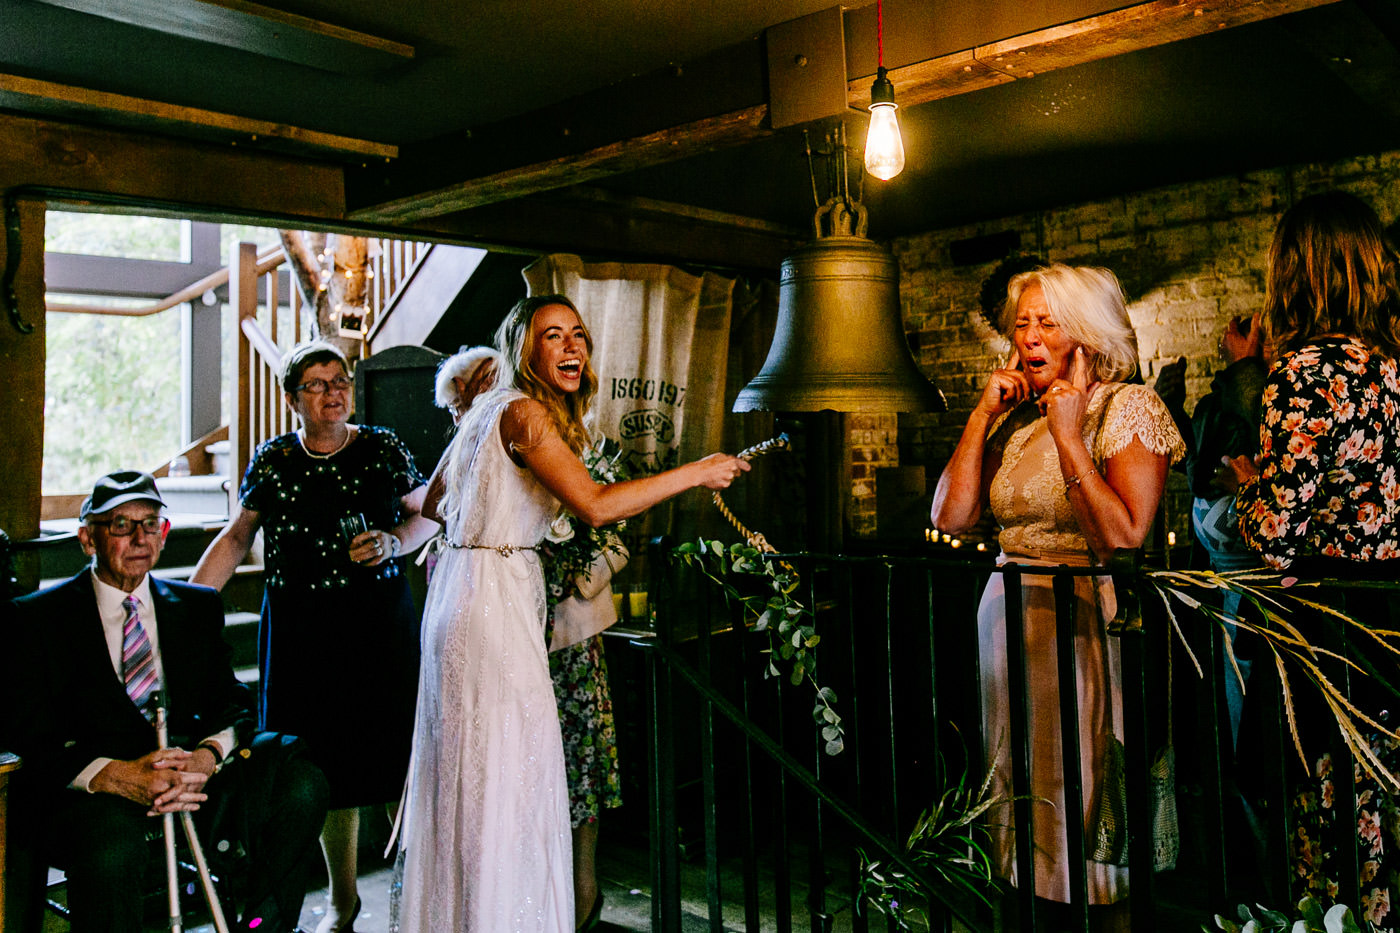 The-bell-in-Ticehurst-pub-kent-wedding-photographer-London-Epic-Love-Story-064